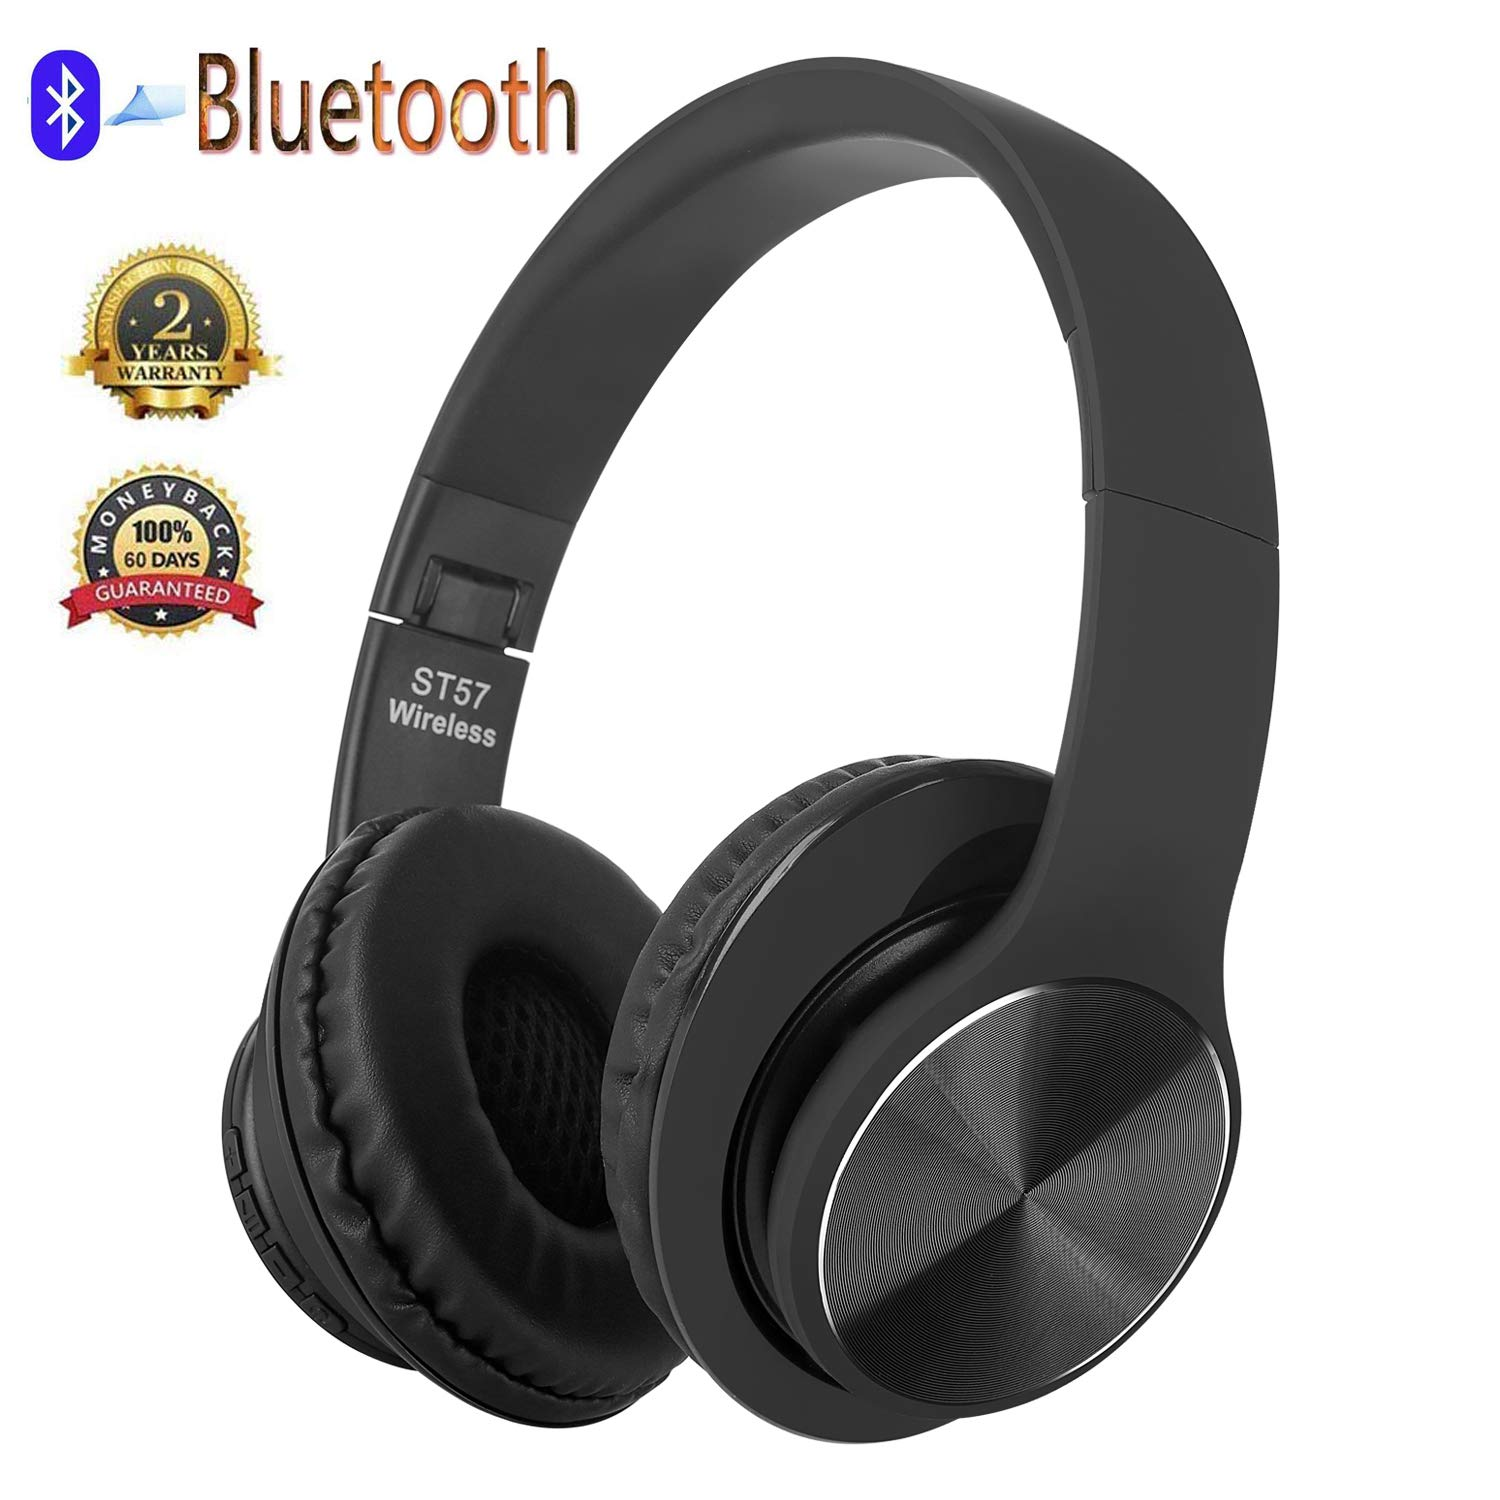 Bluetooth Headphones Over Ear, Hi-Fi Stereo Wireless Headset, Foldable, Soft Memory-Protein Earmuffs, w/Built-in Mic and Wired Mode for PC/Cell Phones/TV